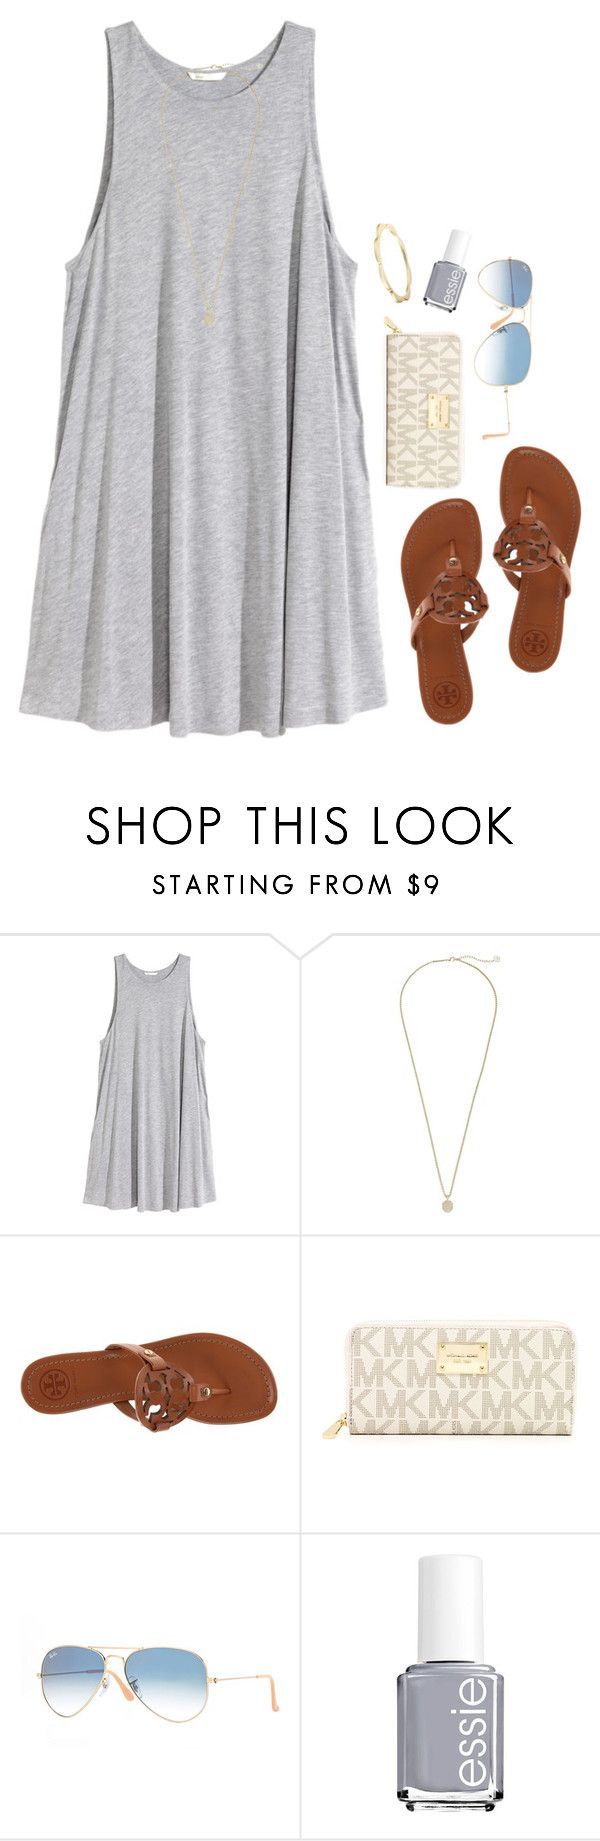 """spring breakkkkk;)))"" by serenag123 ❤ liked on Polyvore featuring H&M, Kendra Scott, Tory Burch, MICHAEL Michael Kors, Ray-Ban, Essie and Kate Spade"